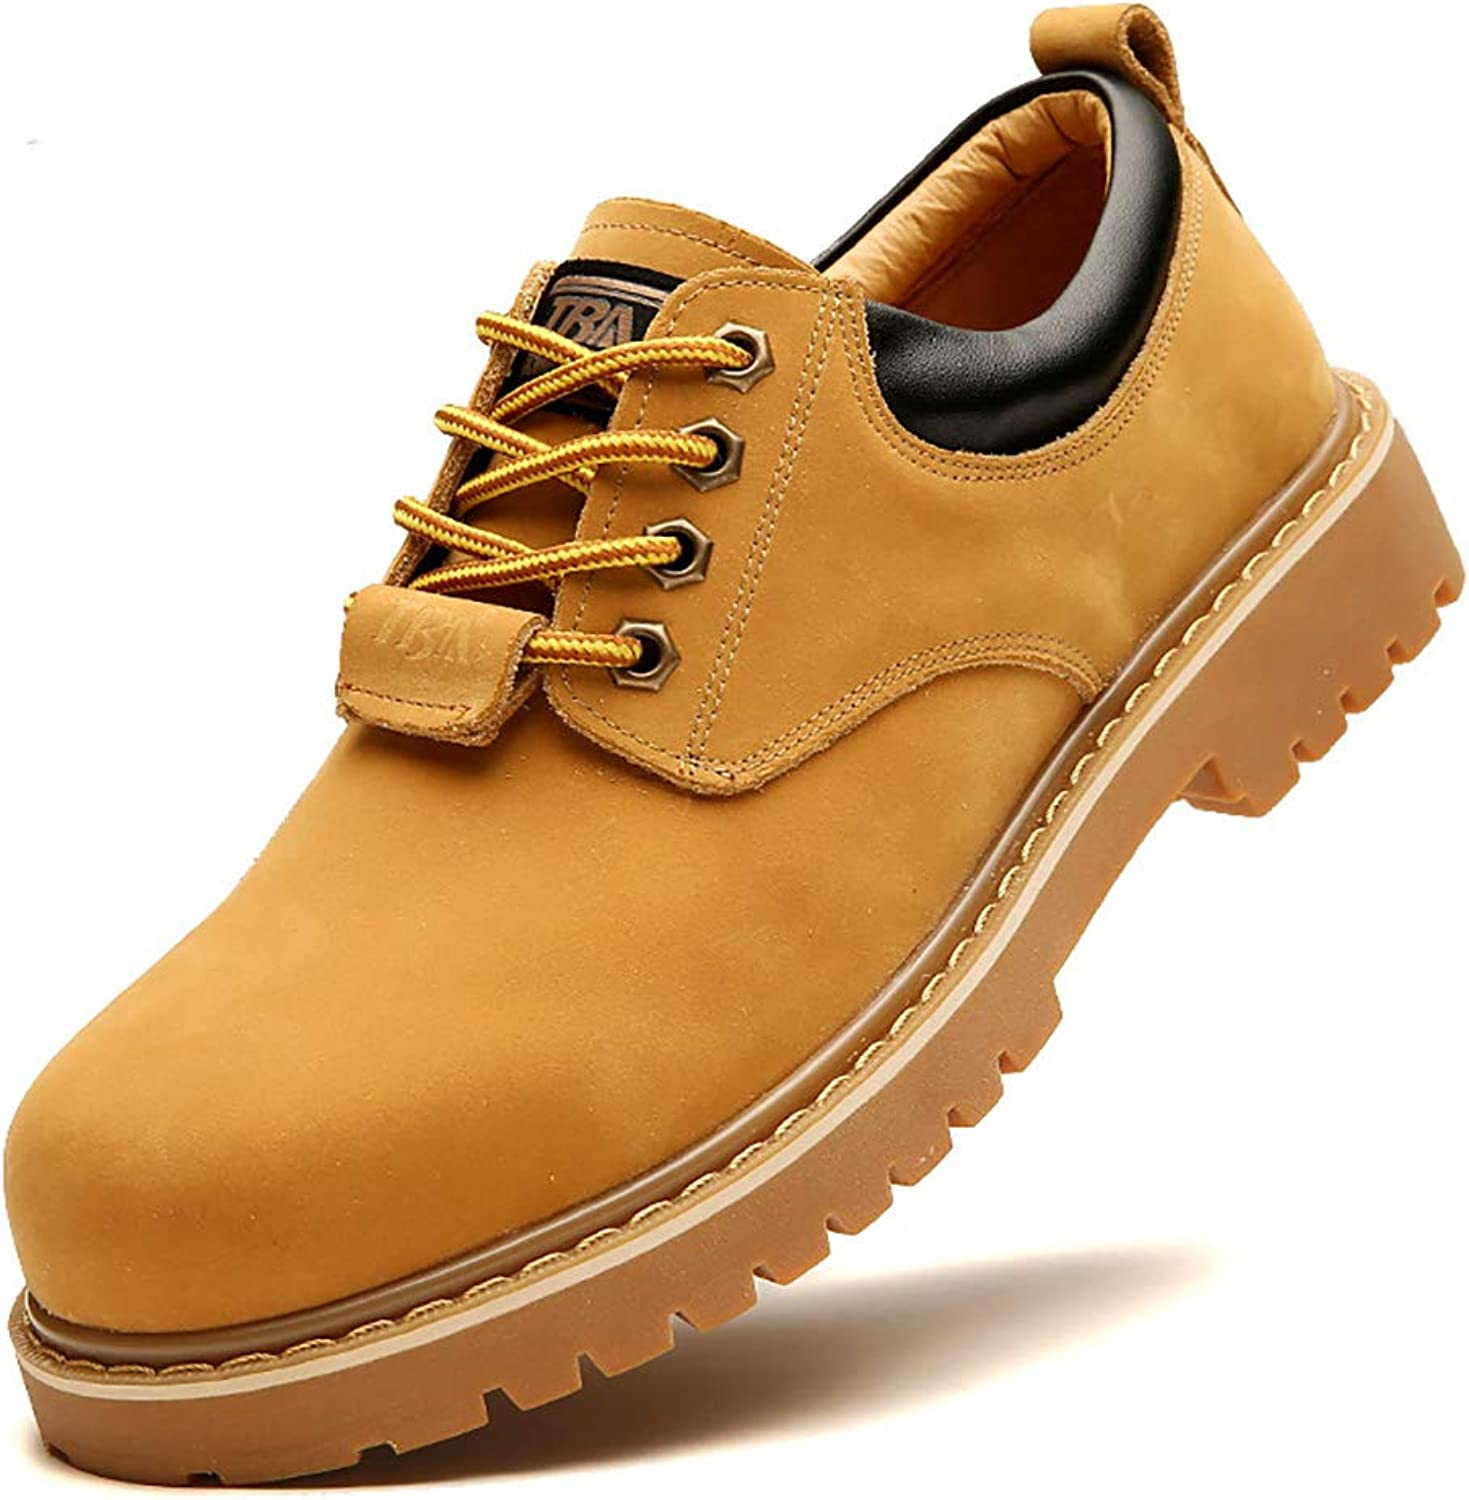 Dress shoes Men's Work shoes Business shoes Wheat Yellow Size 38-44